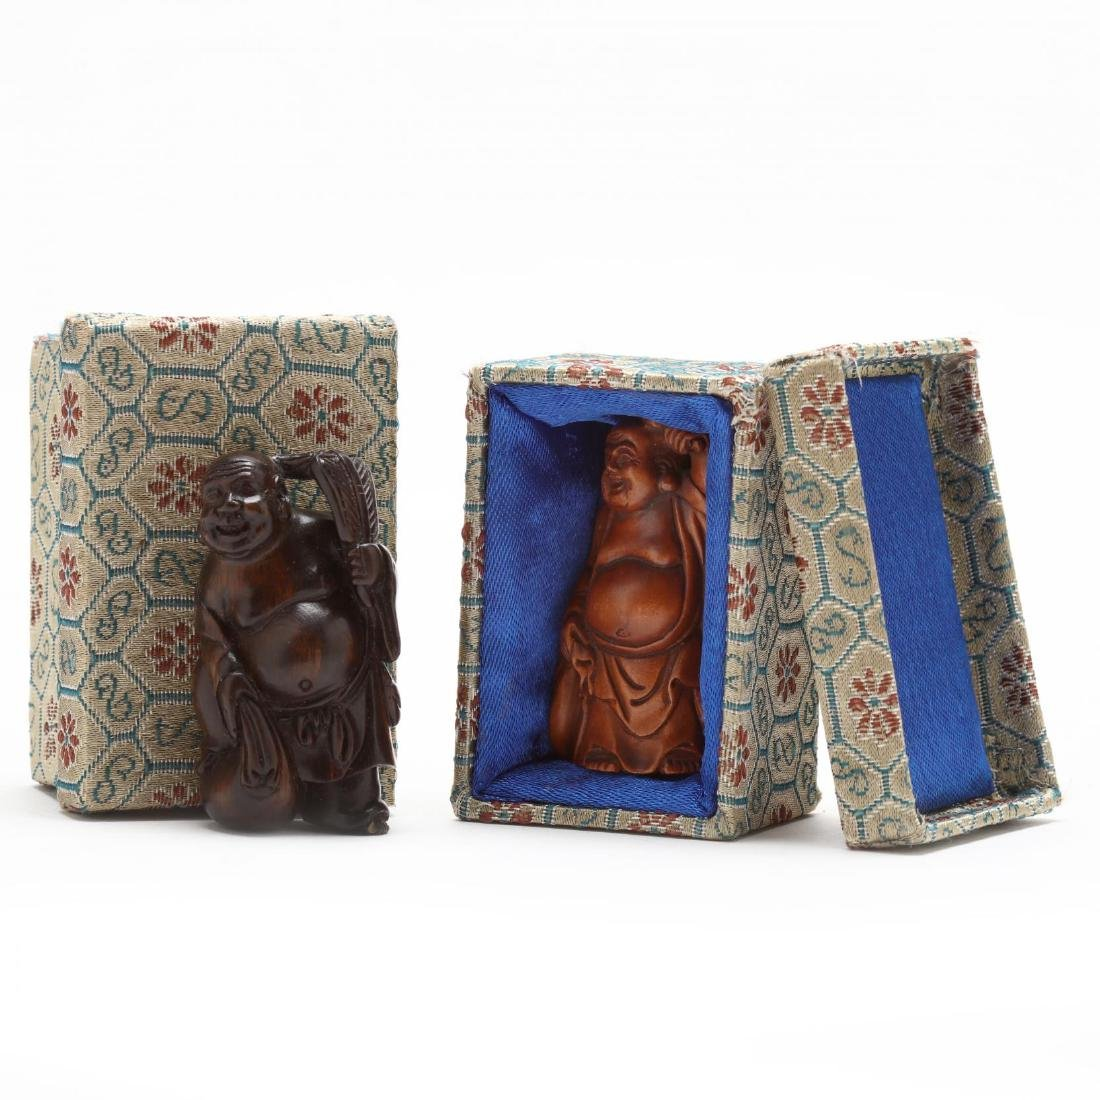 Two Carved Wooden Netsuke Figures